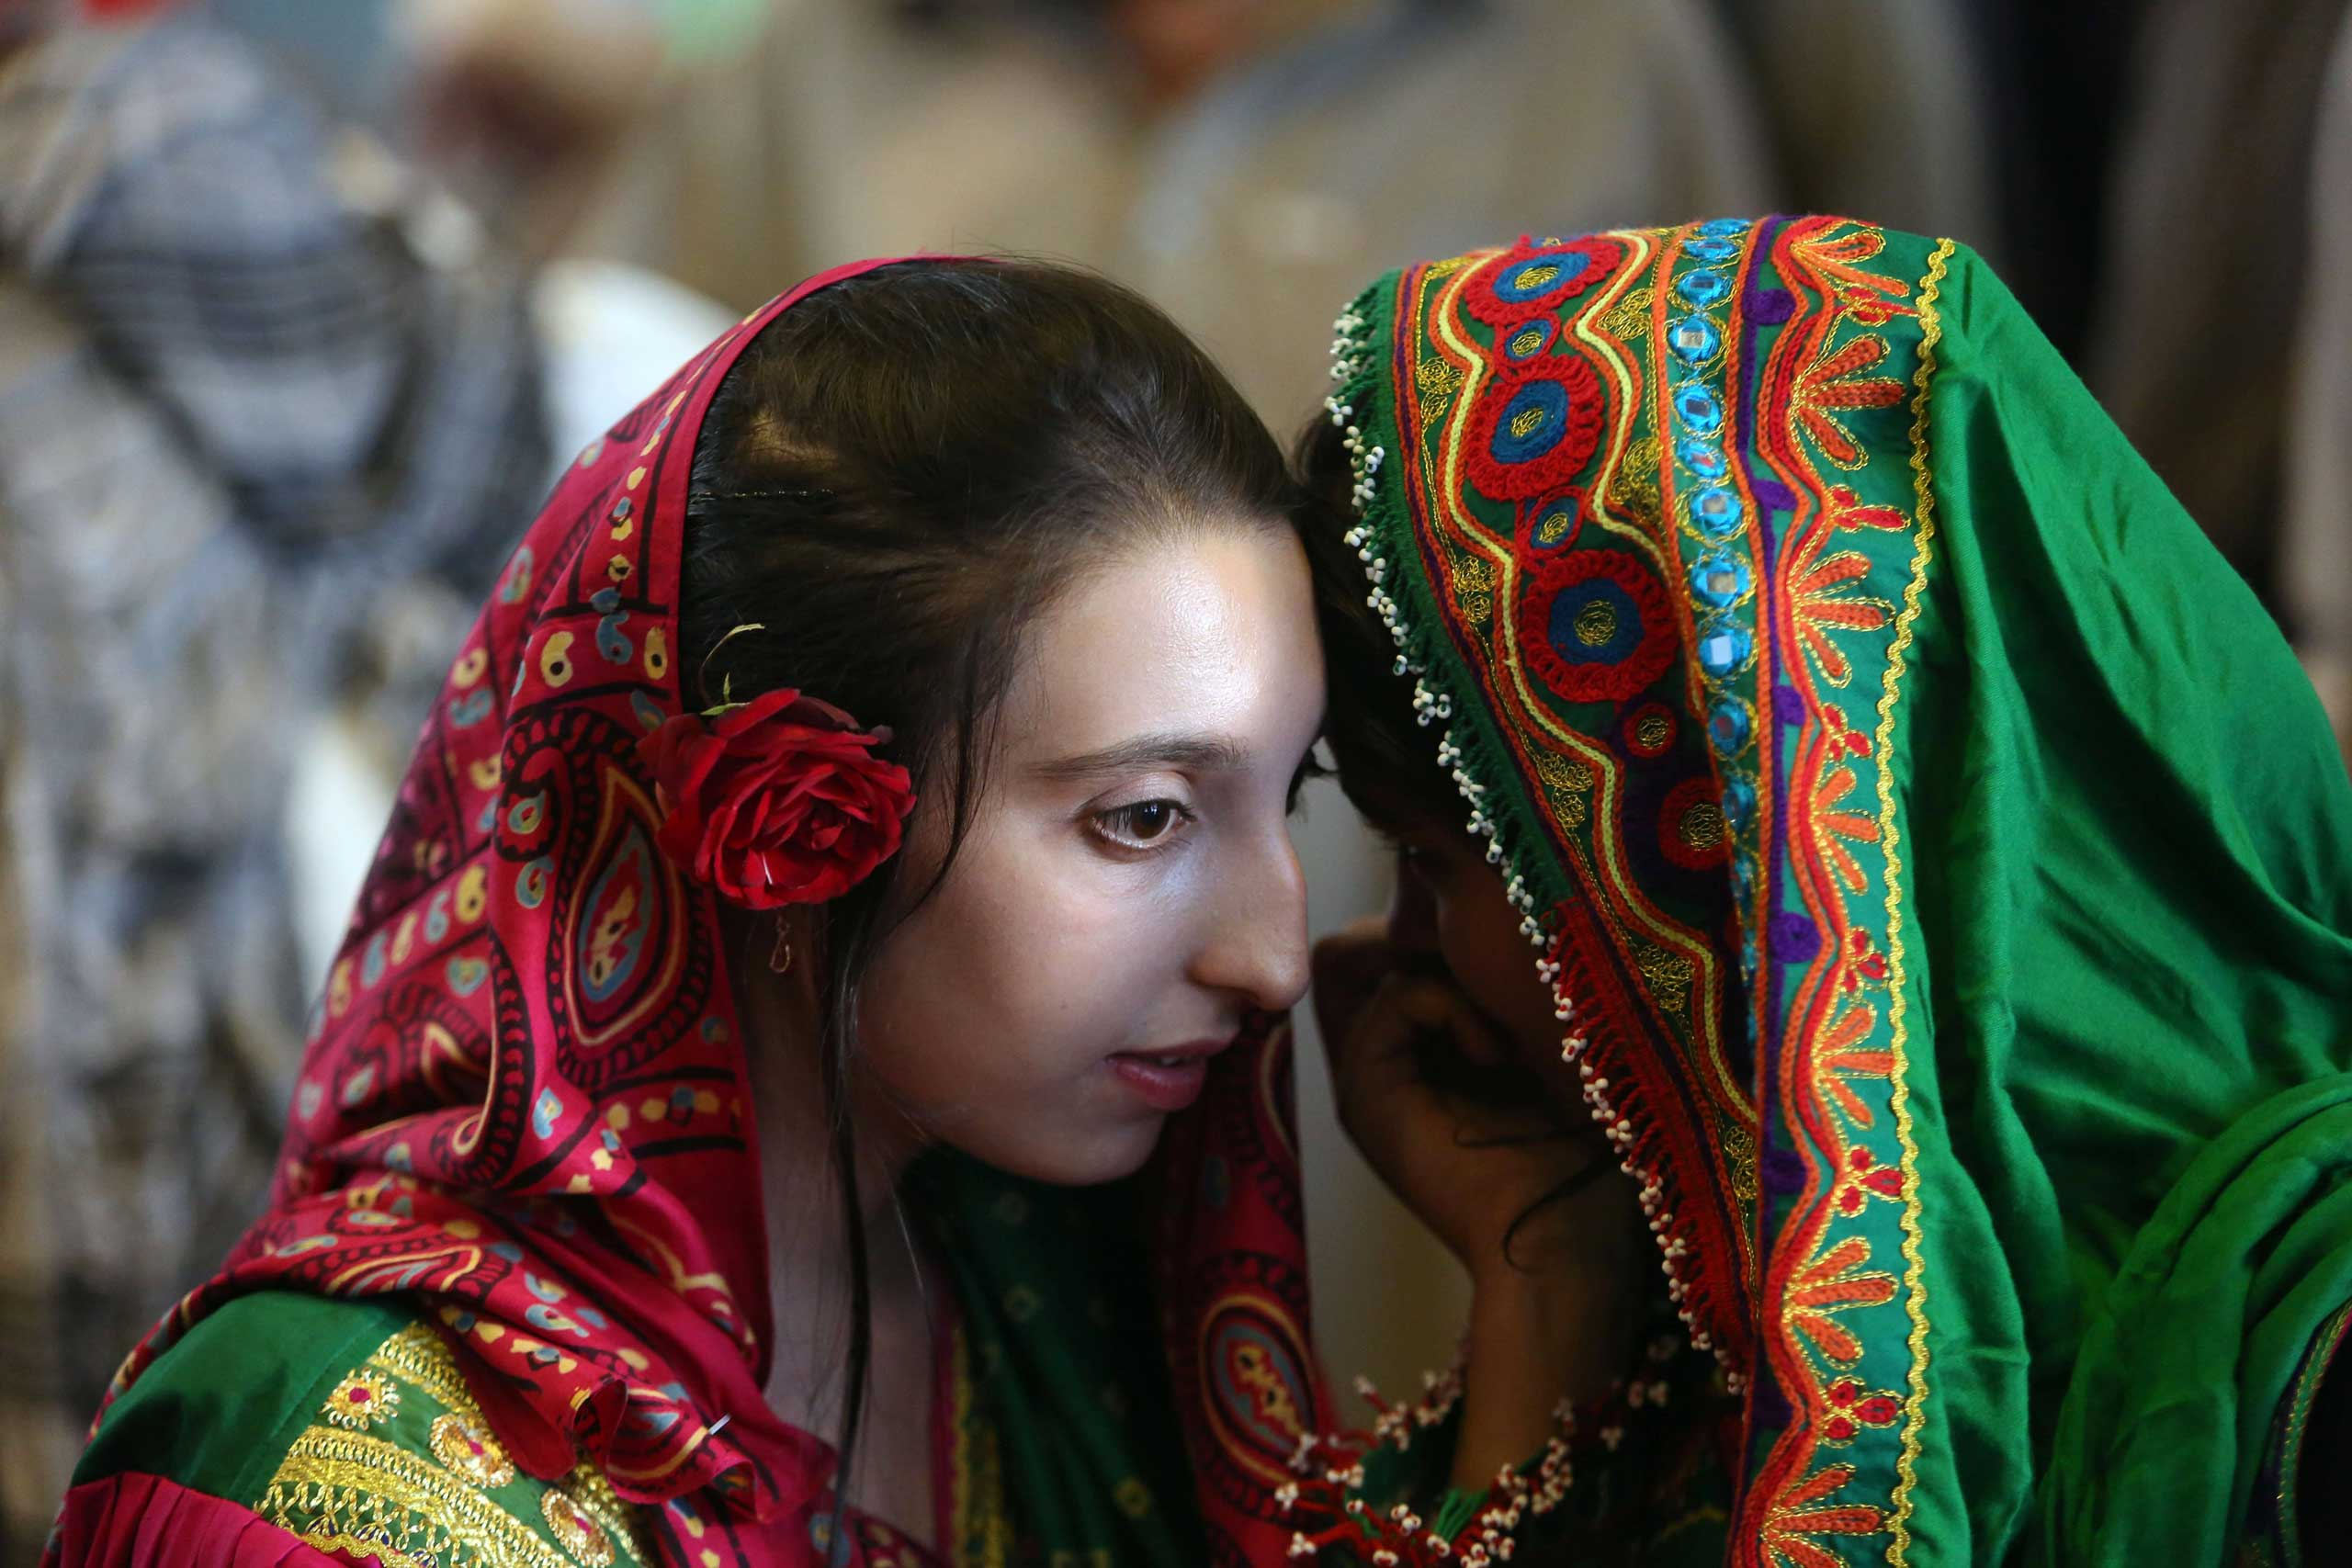 Sept. 22, 2014. Afghan girls gather to hear a speech by Ashraf Ghani Ahmadzai in his first public appearance since winning the election runoff in Kabul, Afghanistan.